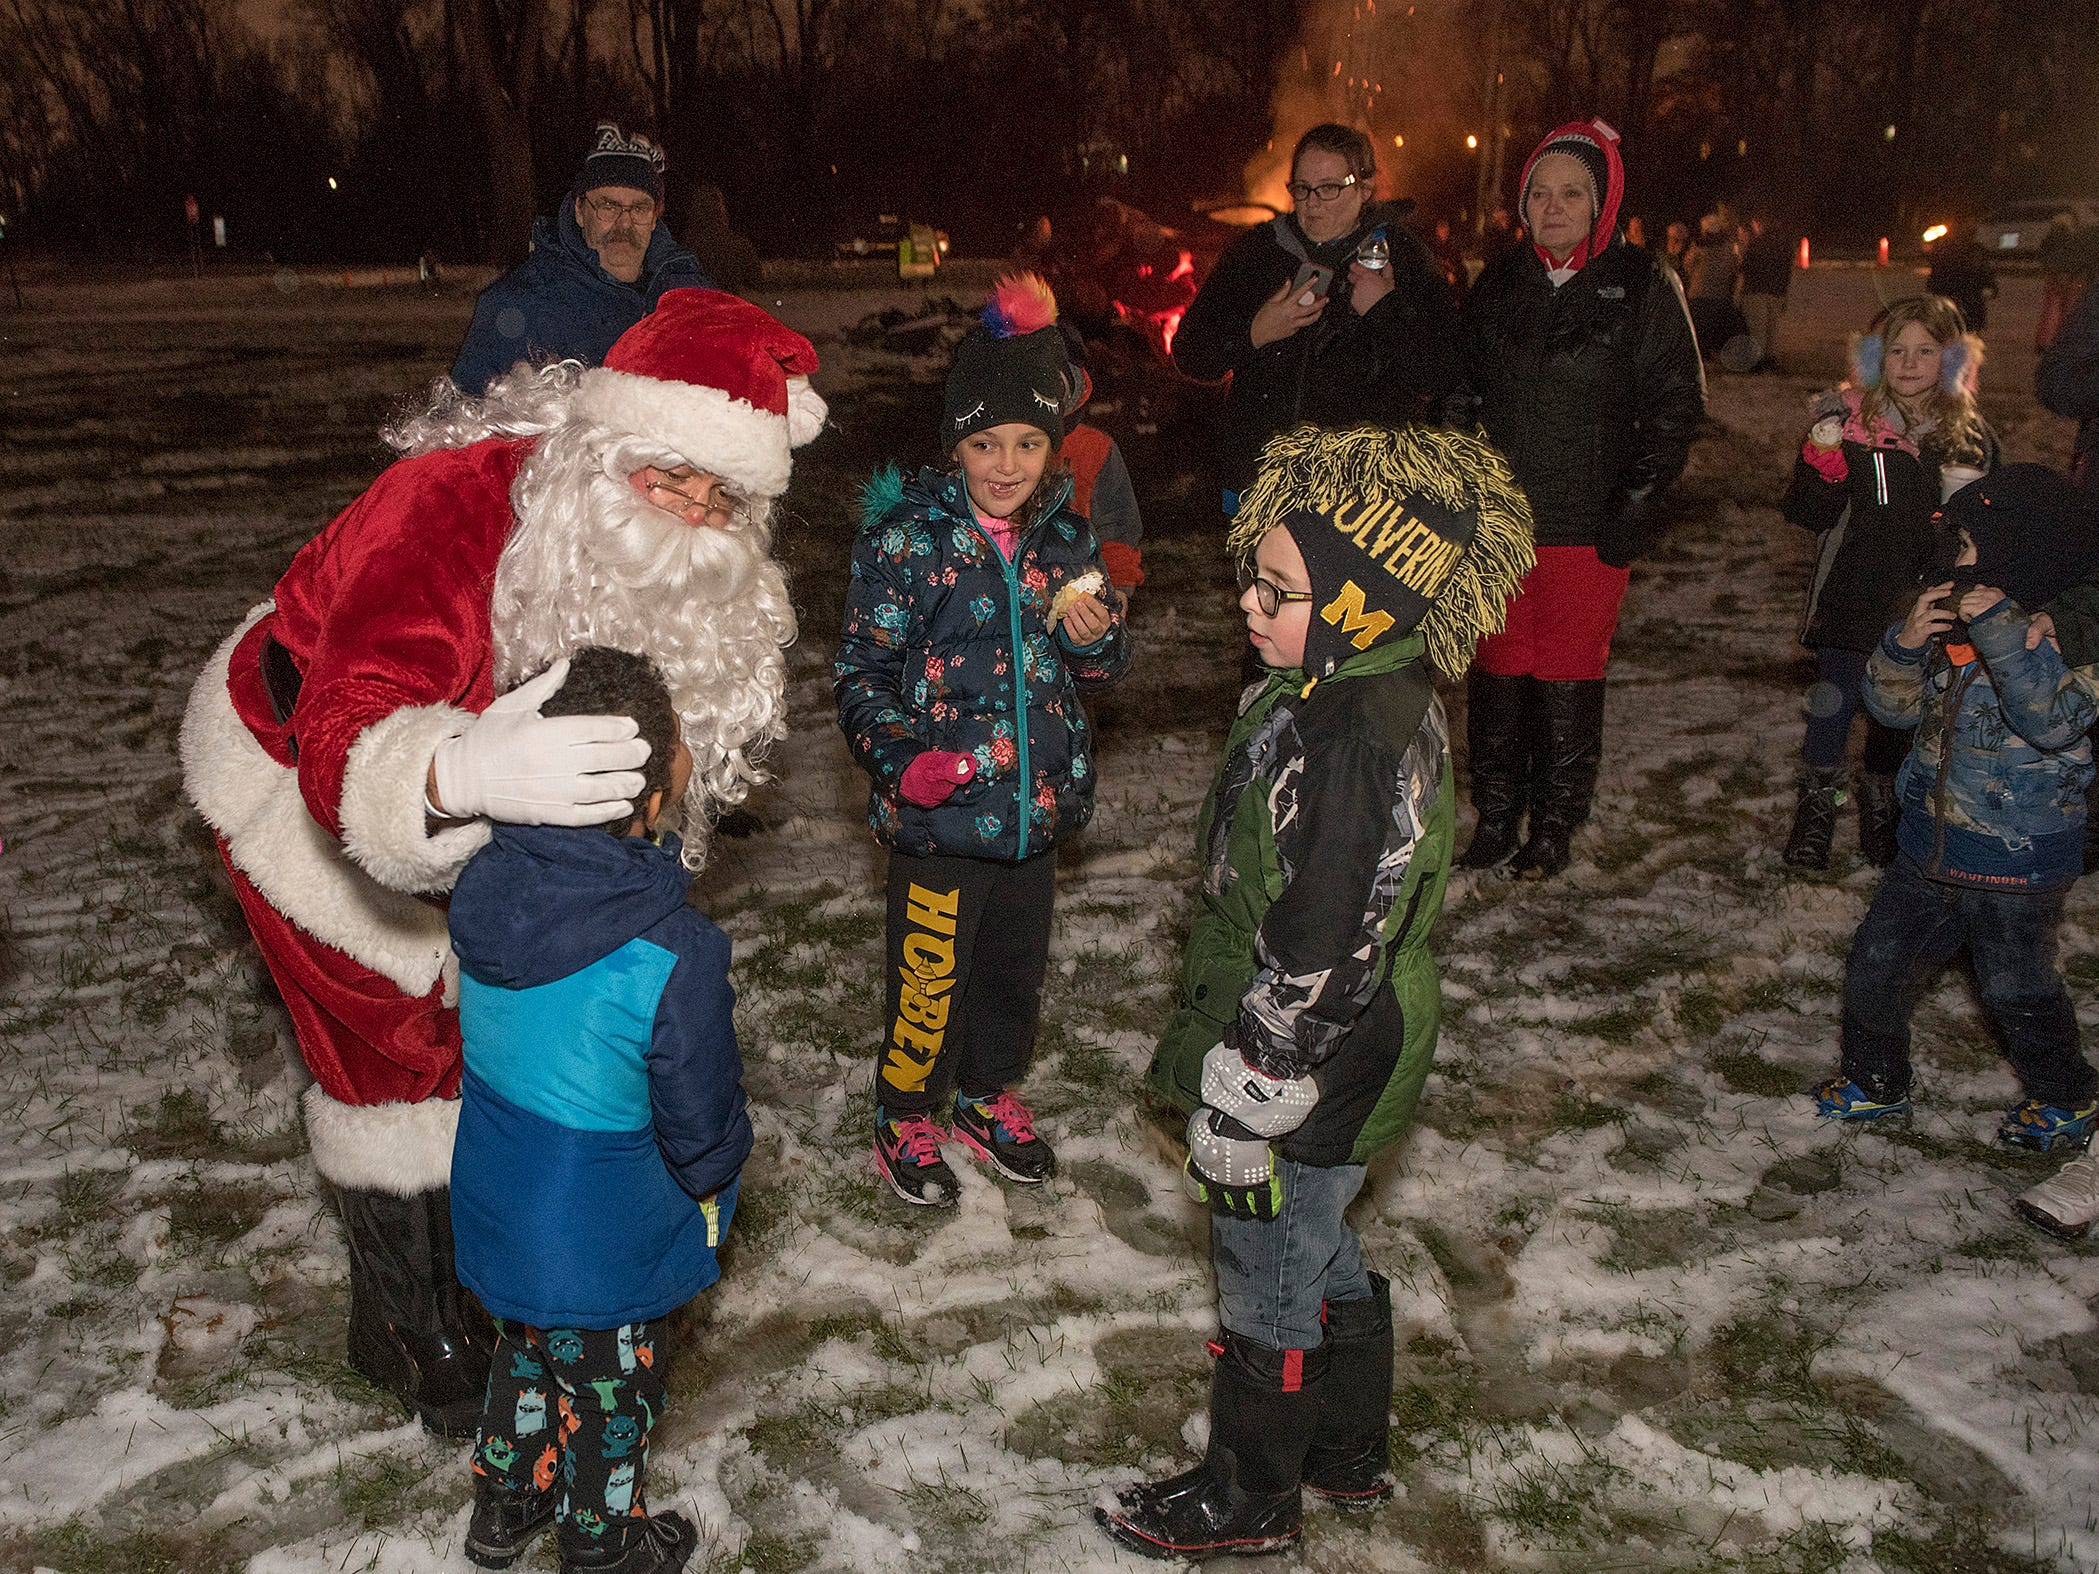 Santa is just about the most important guy around. He greets  few of his fans at Lightfest.